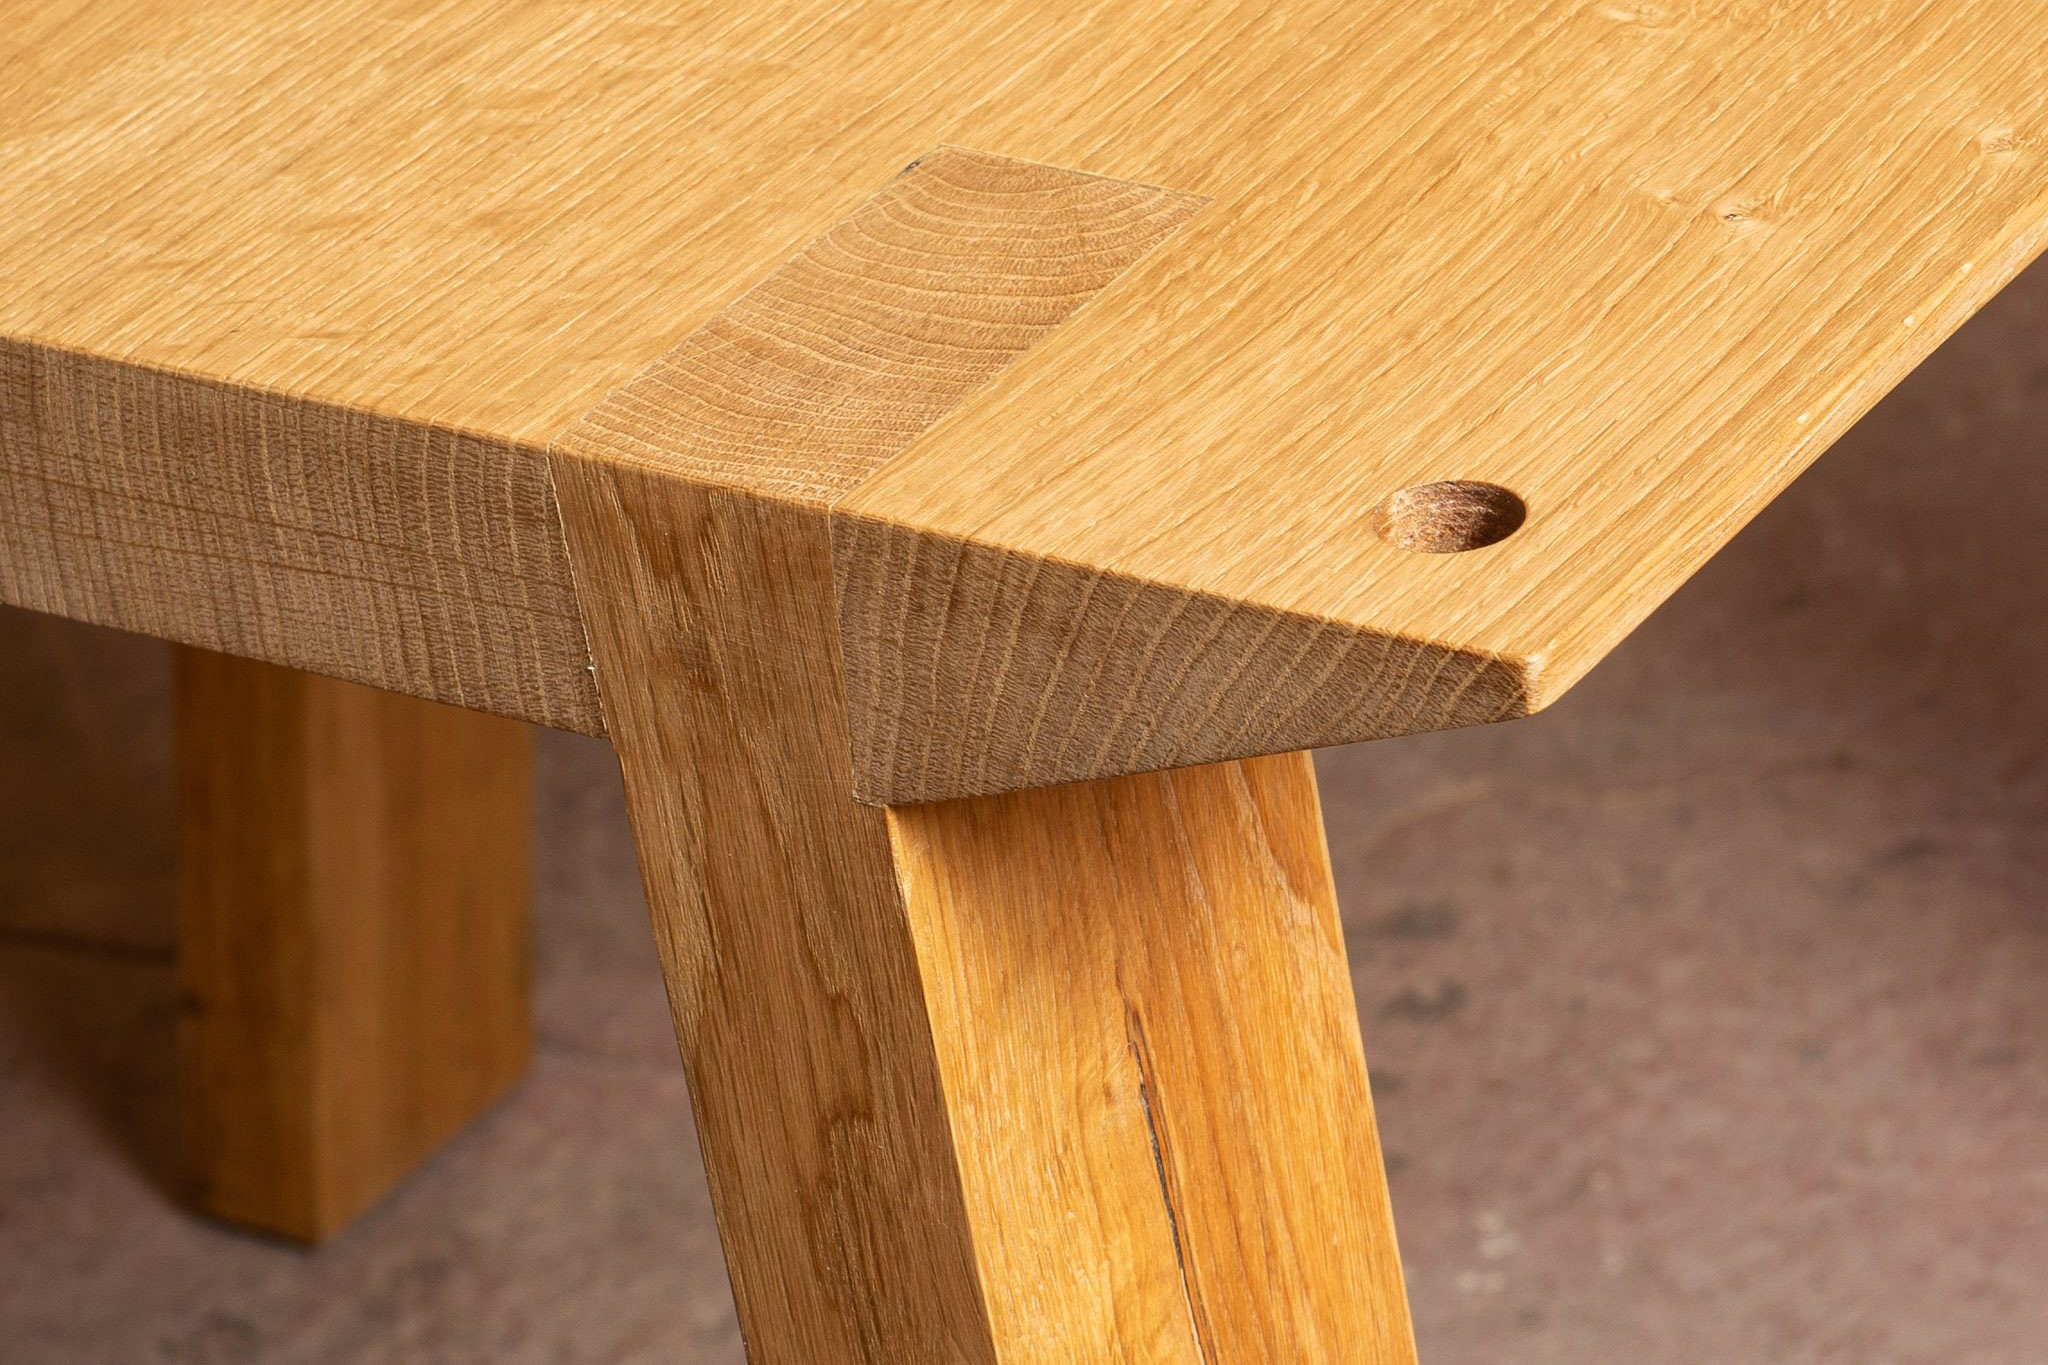 Vud Design Tables Trieste dispoke Italy